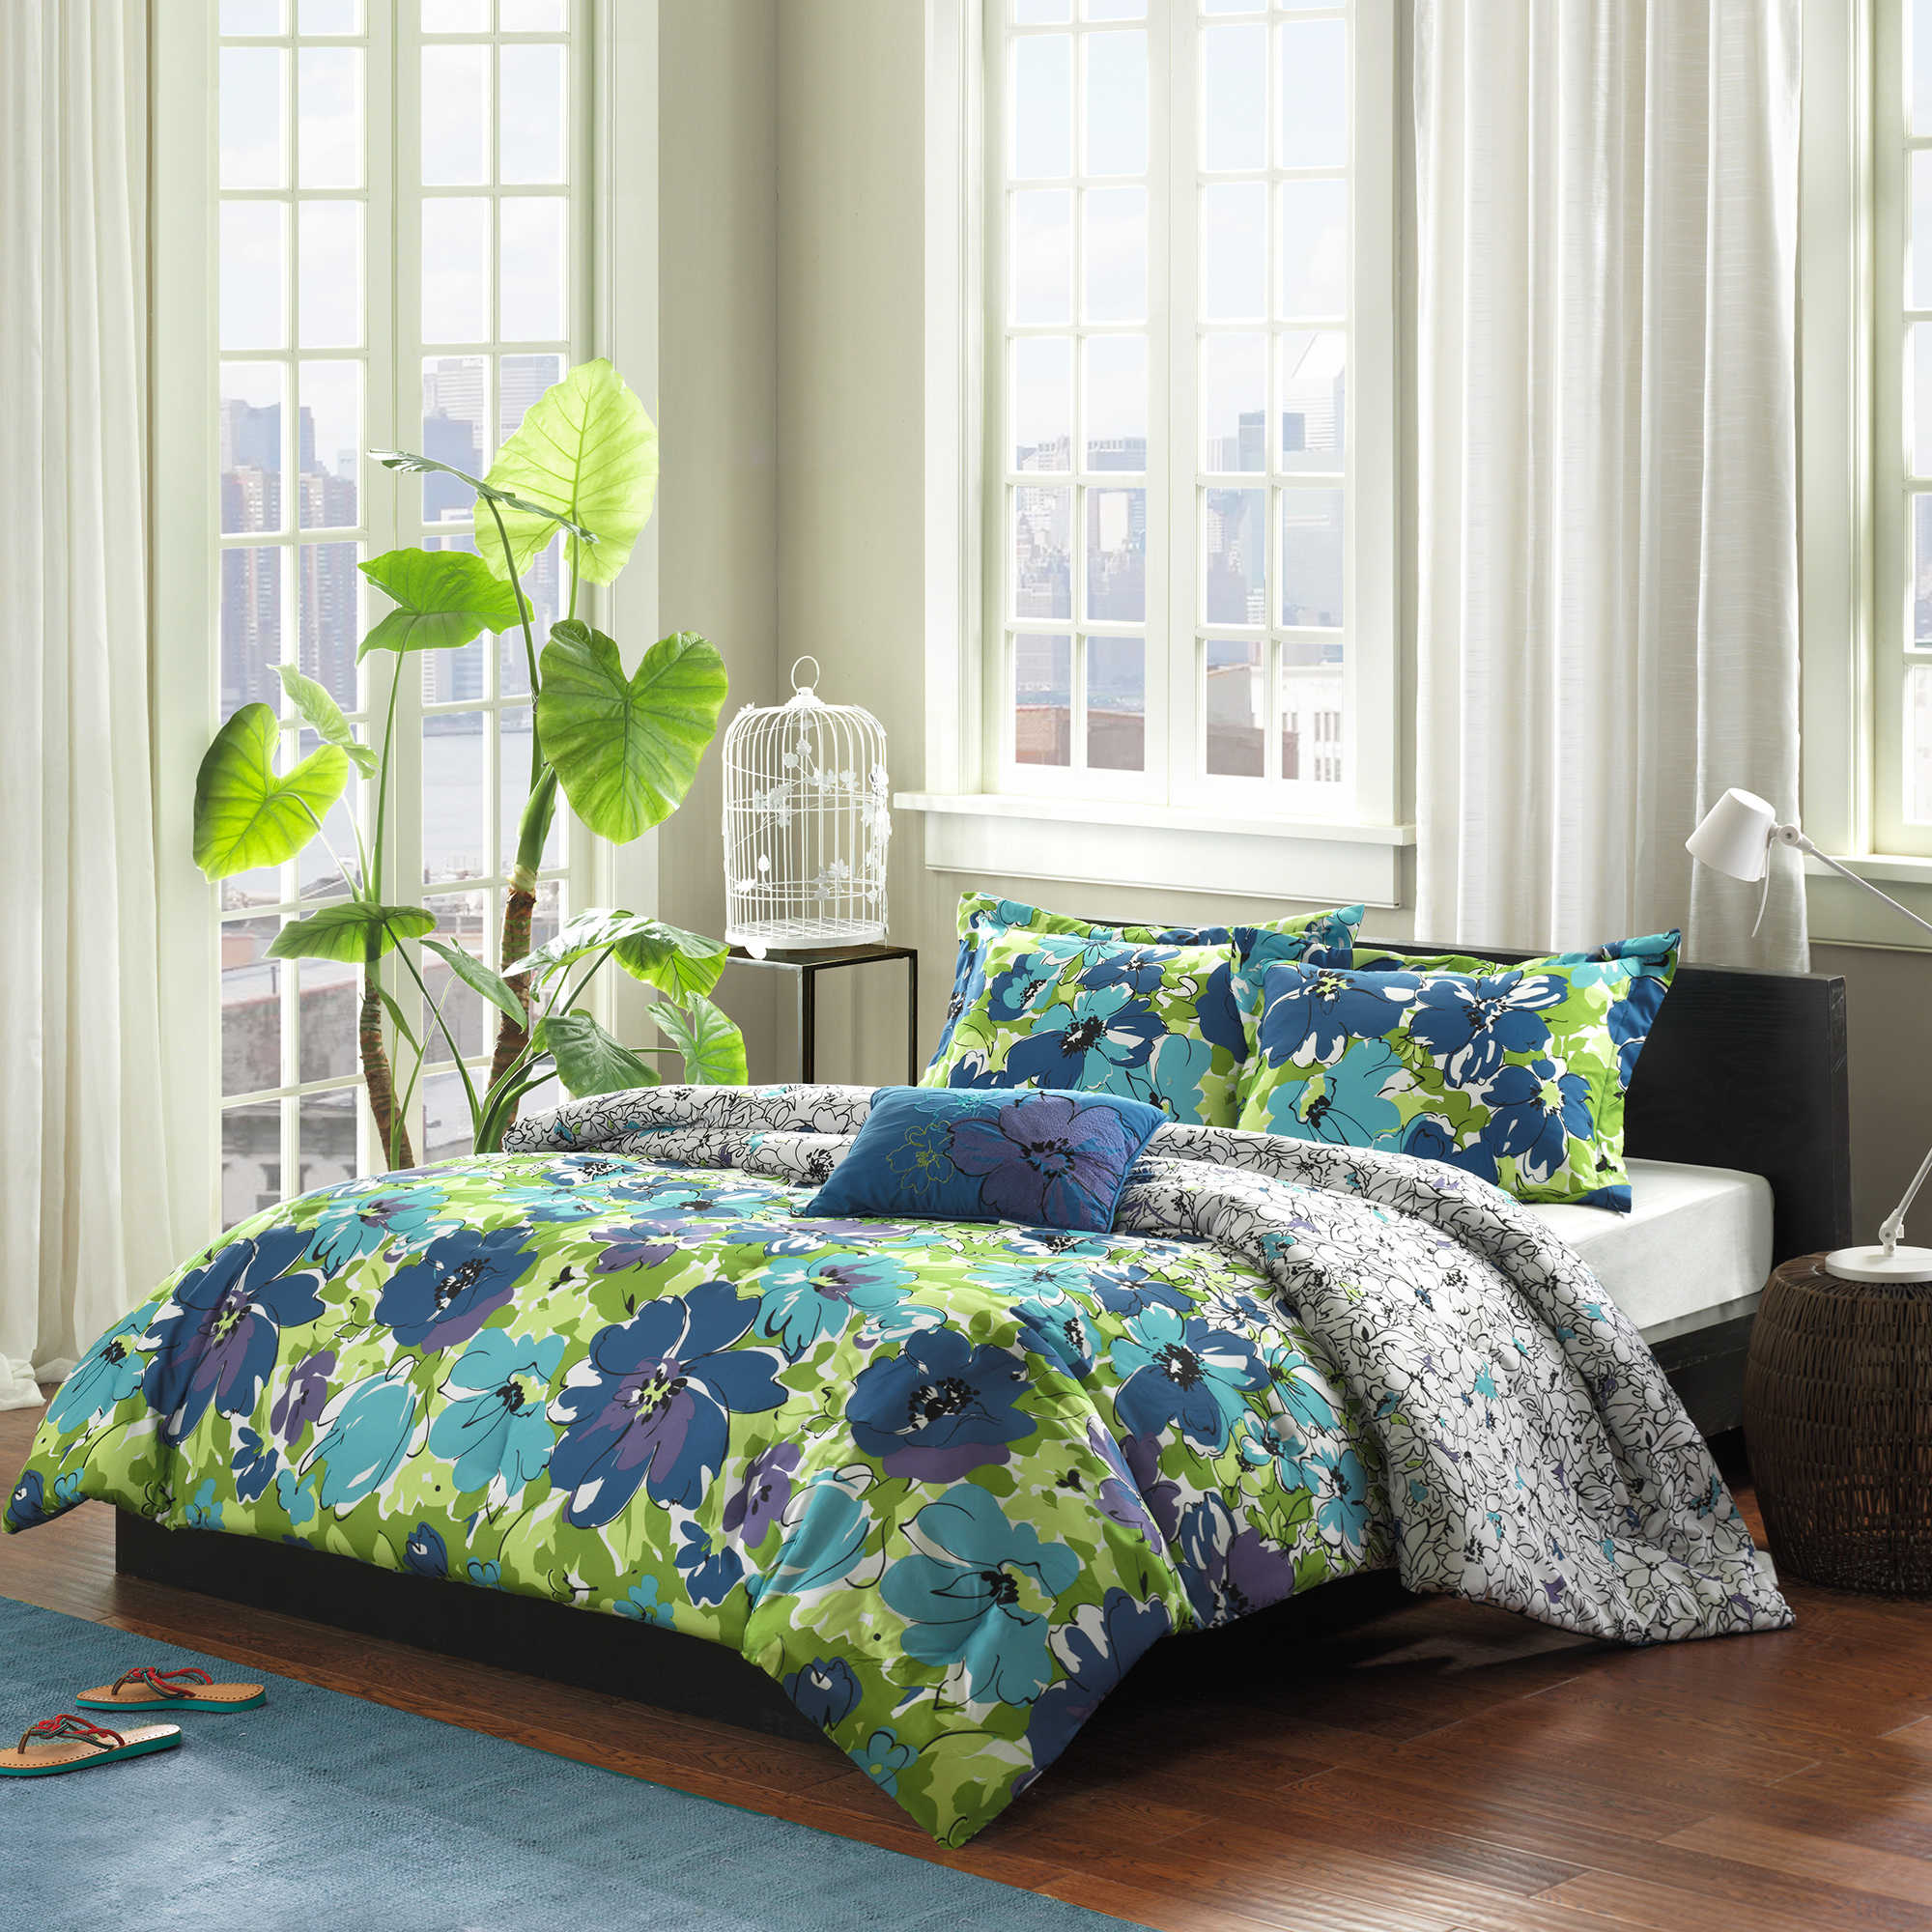 Bed Bath and Beyond s List Bedroom on Giftster